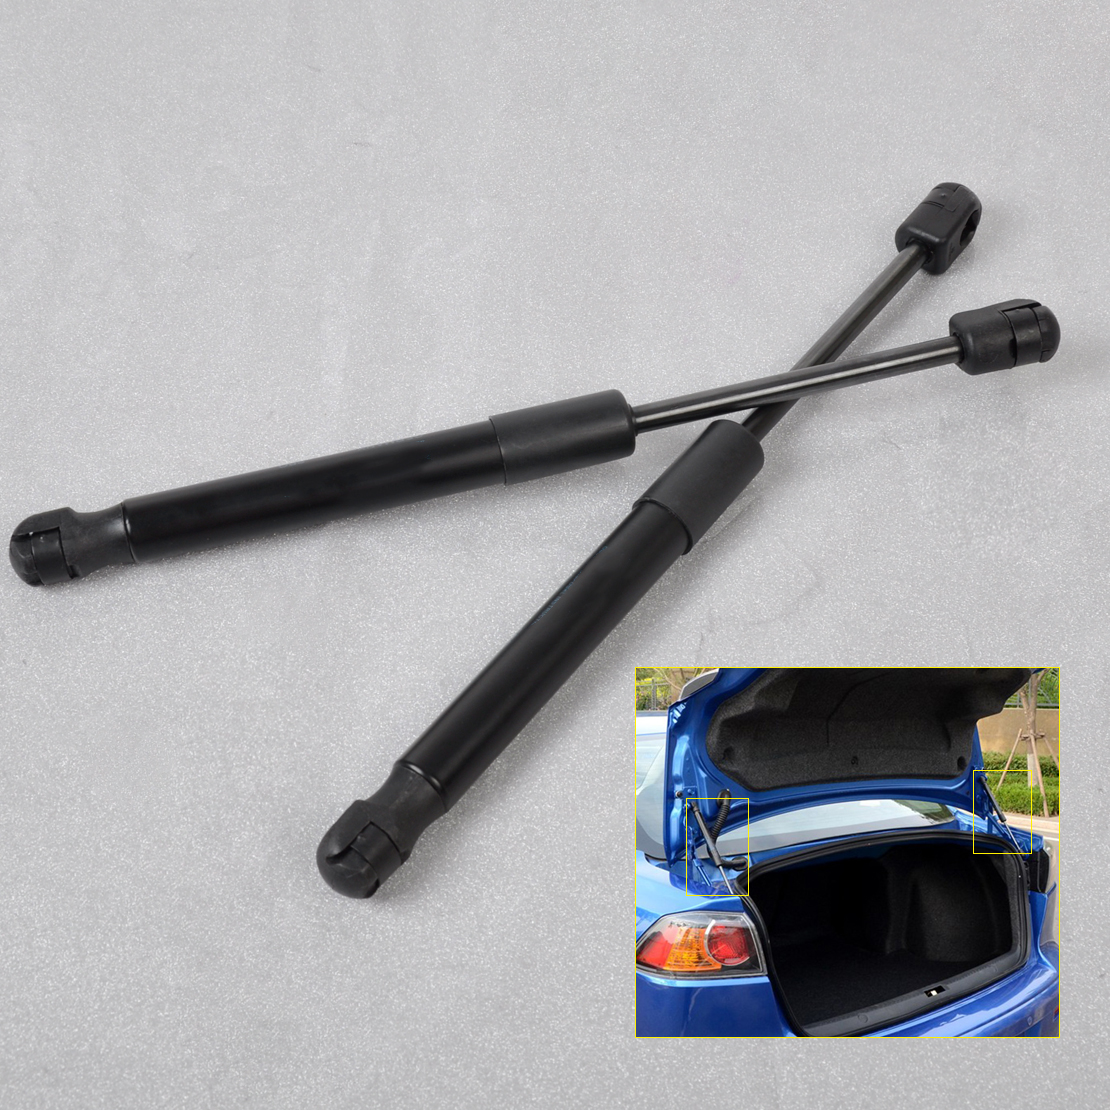 2 Pieces Tuff Support Rear Liftgate Lift Supports 2010 To 2013 Volkswagen Tiguan Cab Wagon SET